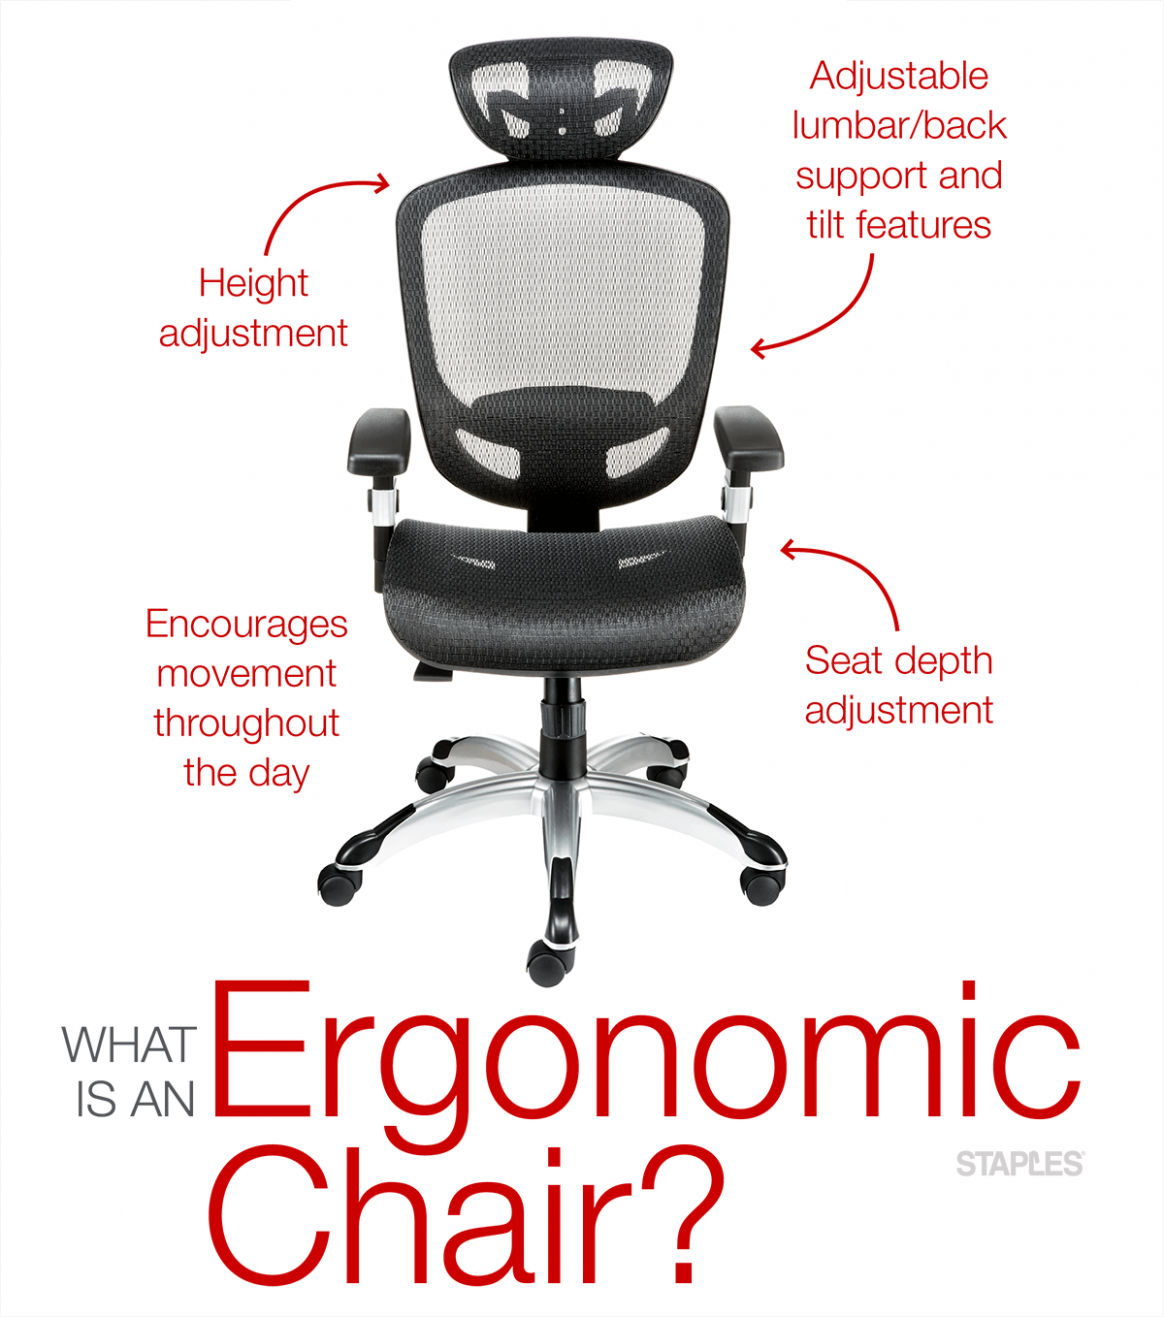 15 Unconventional Knowledge About Ergonomic Features Of A Chair